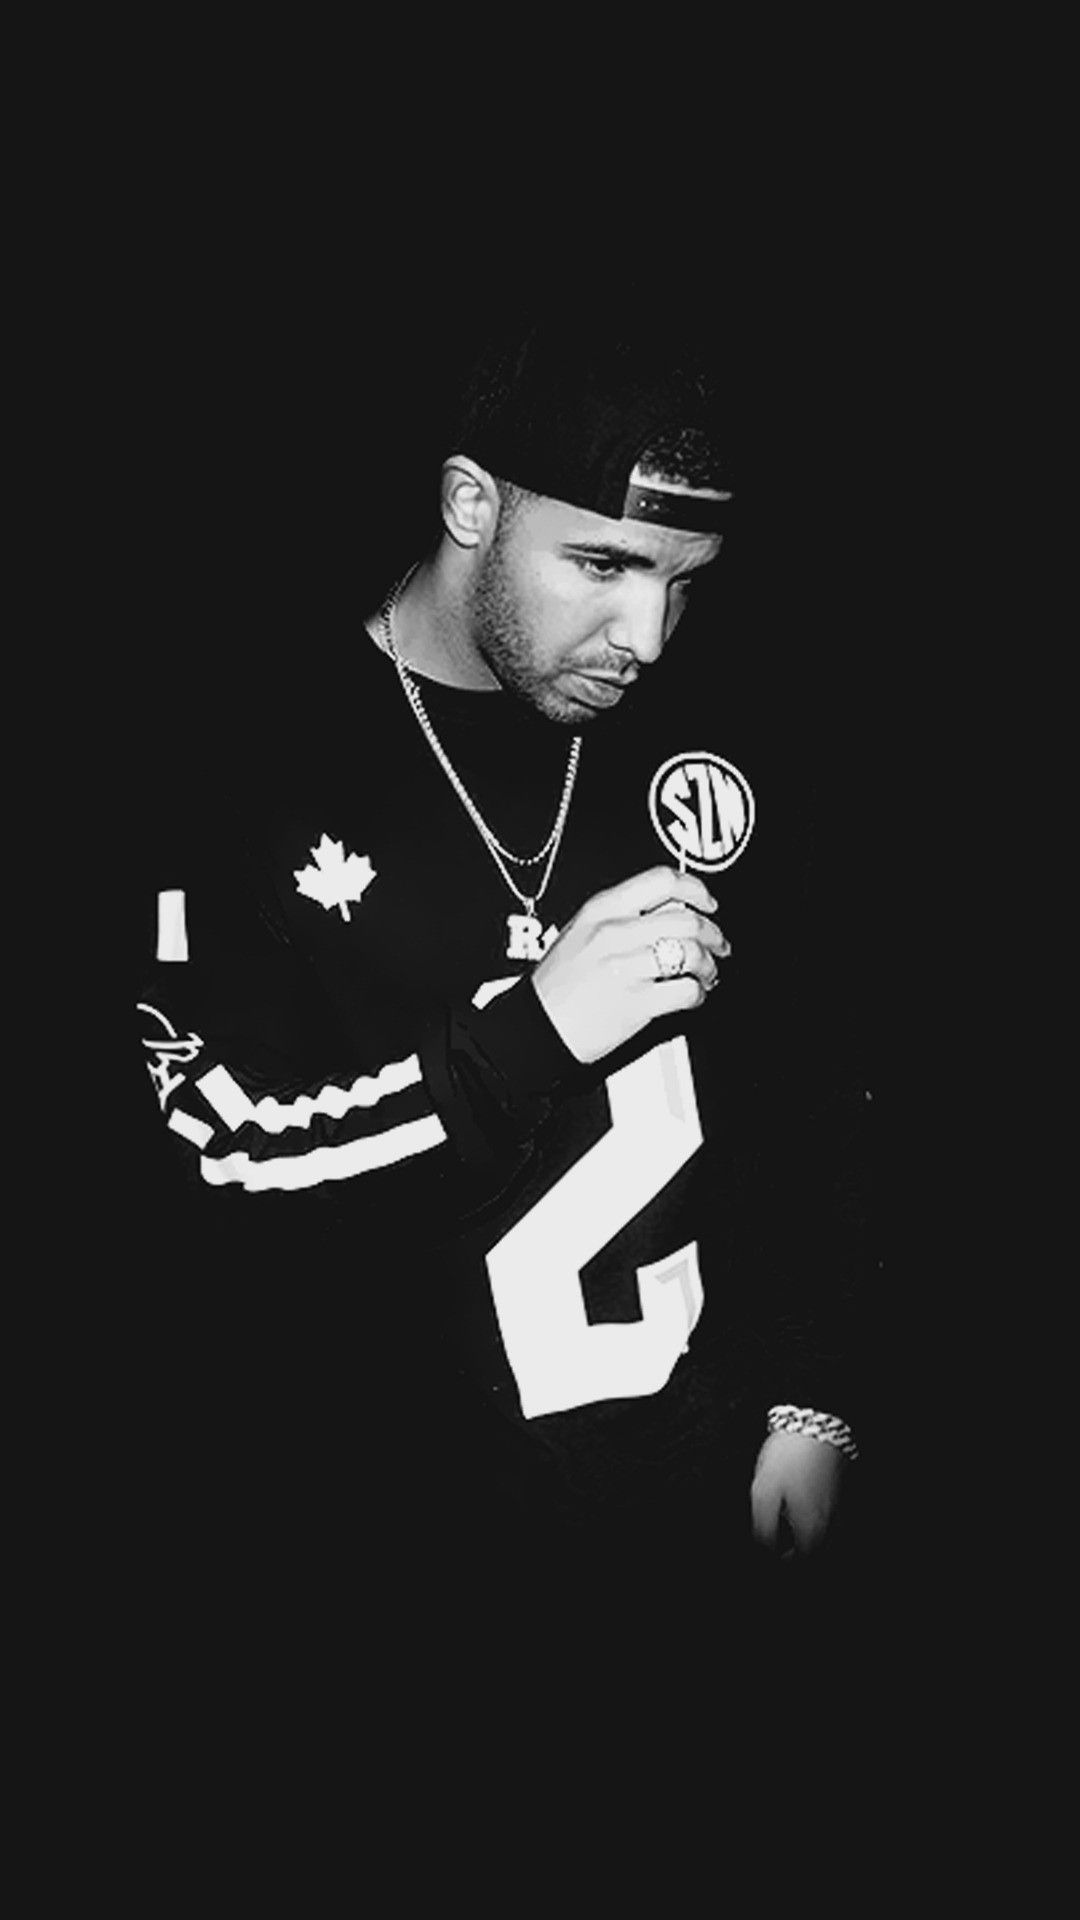 1080x1920 Lockscreens Drake Lockscreens Drake Wallpaper Drake Wallpaper Homescreen Lockhome Screens Drake Wallpapers Rapper Wallpaper Iphone Iphone Background